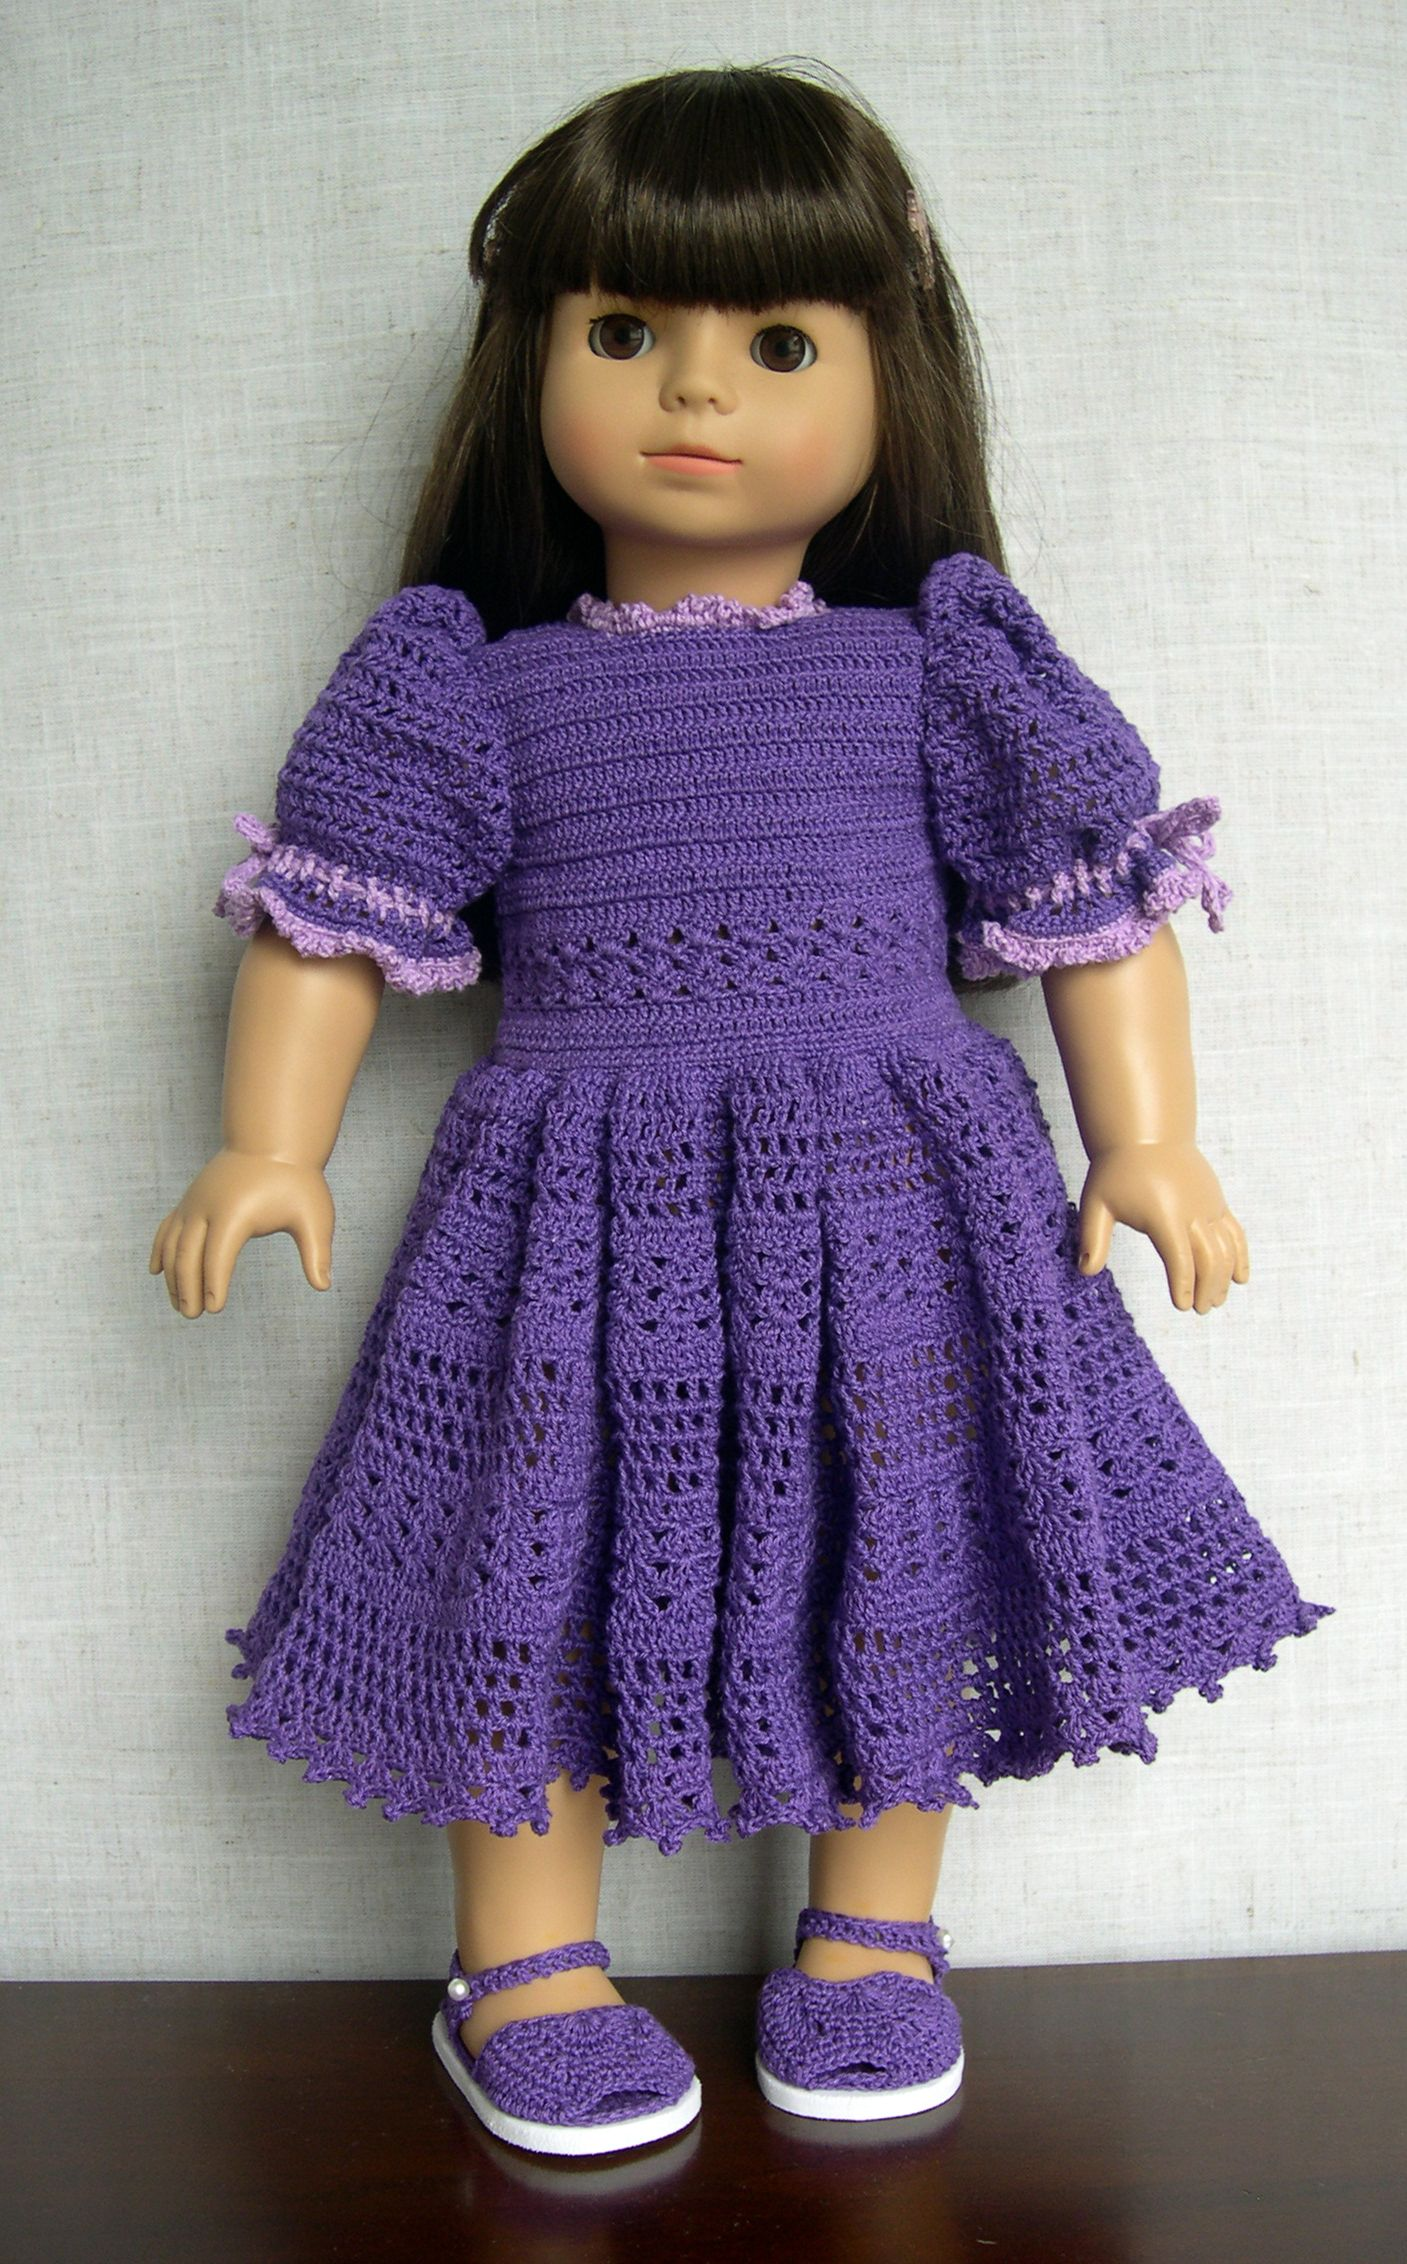 Crochet Dress Up Doll Pattern : Pin by Ellen Lord on 18 inch doll clothes and accessories ...